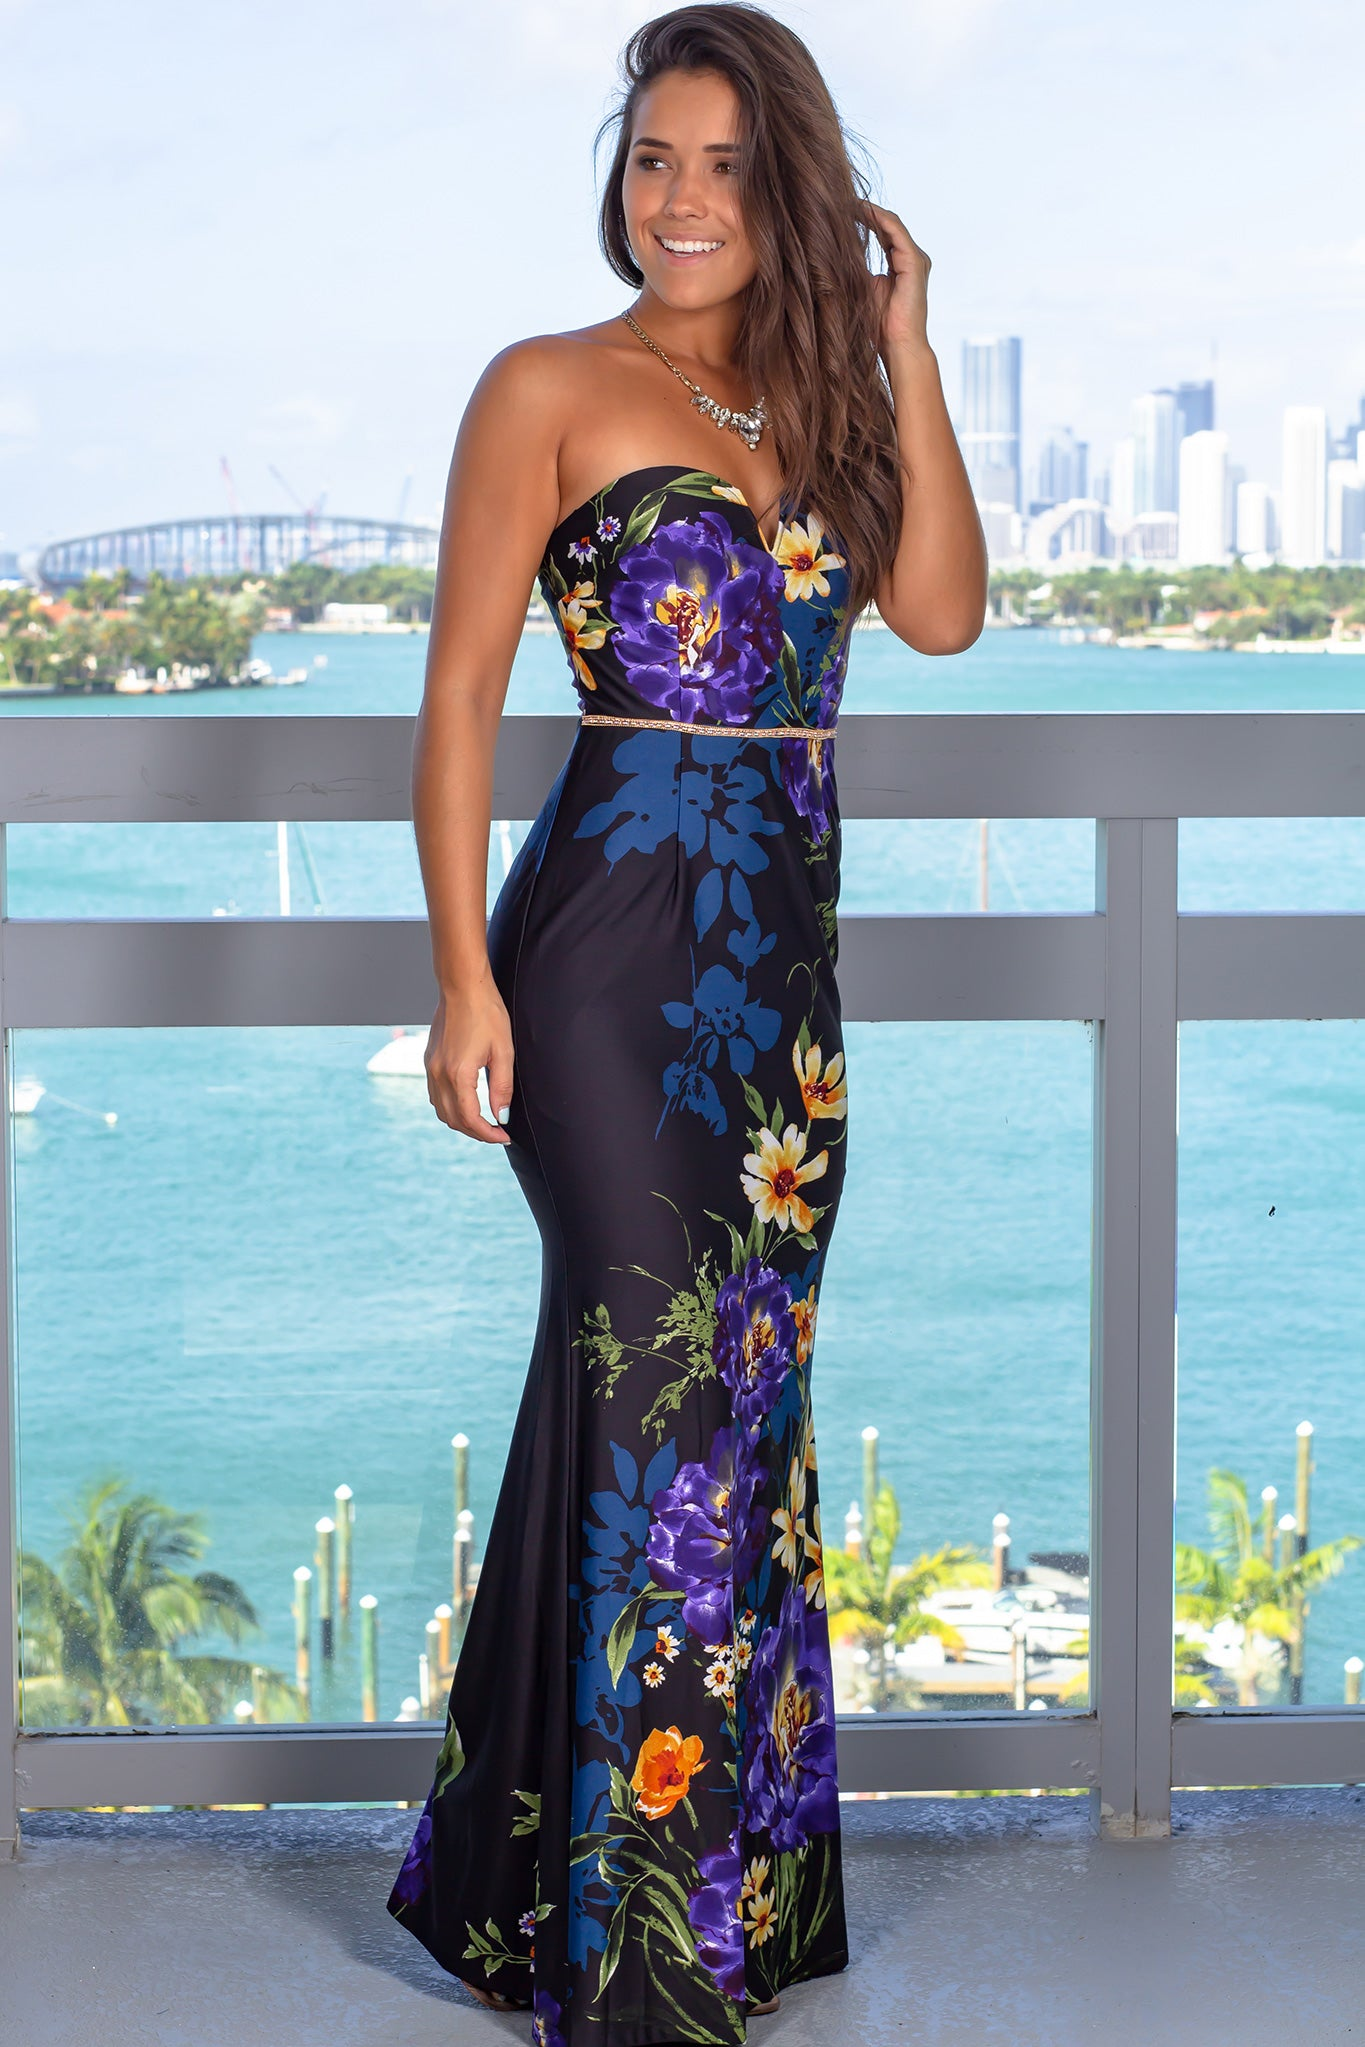 Violet Strapless Maxi Dress with Jeweled Belt